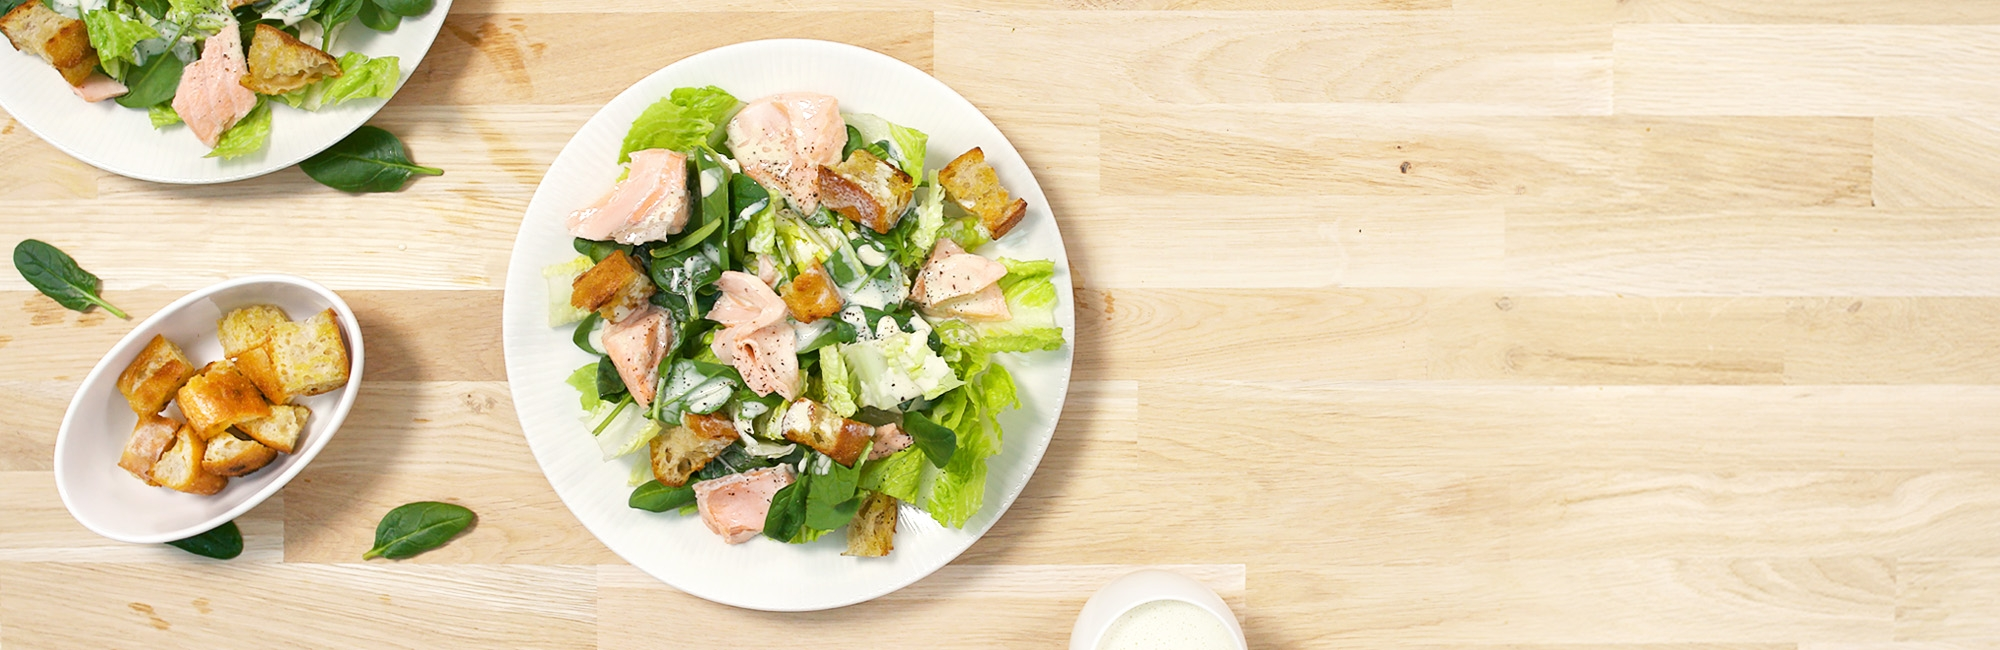 zalm, sla, spinazie, croutons, salade, dressing